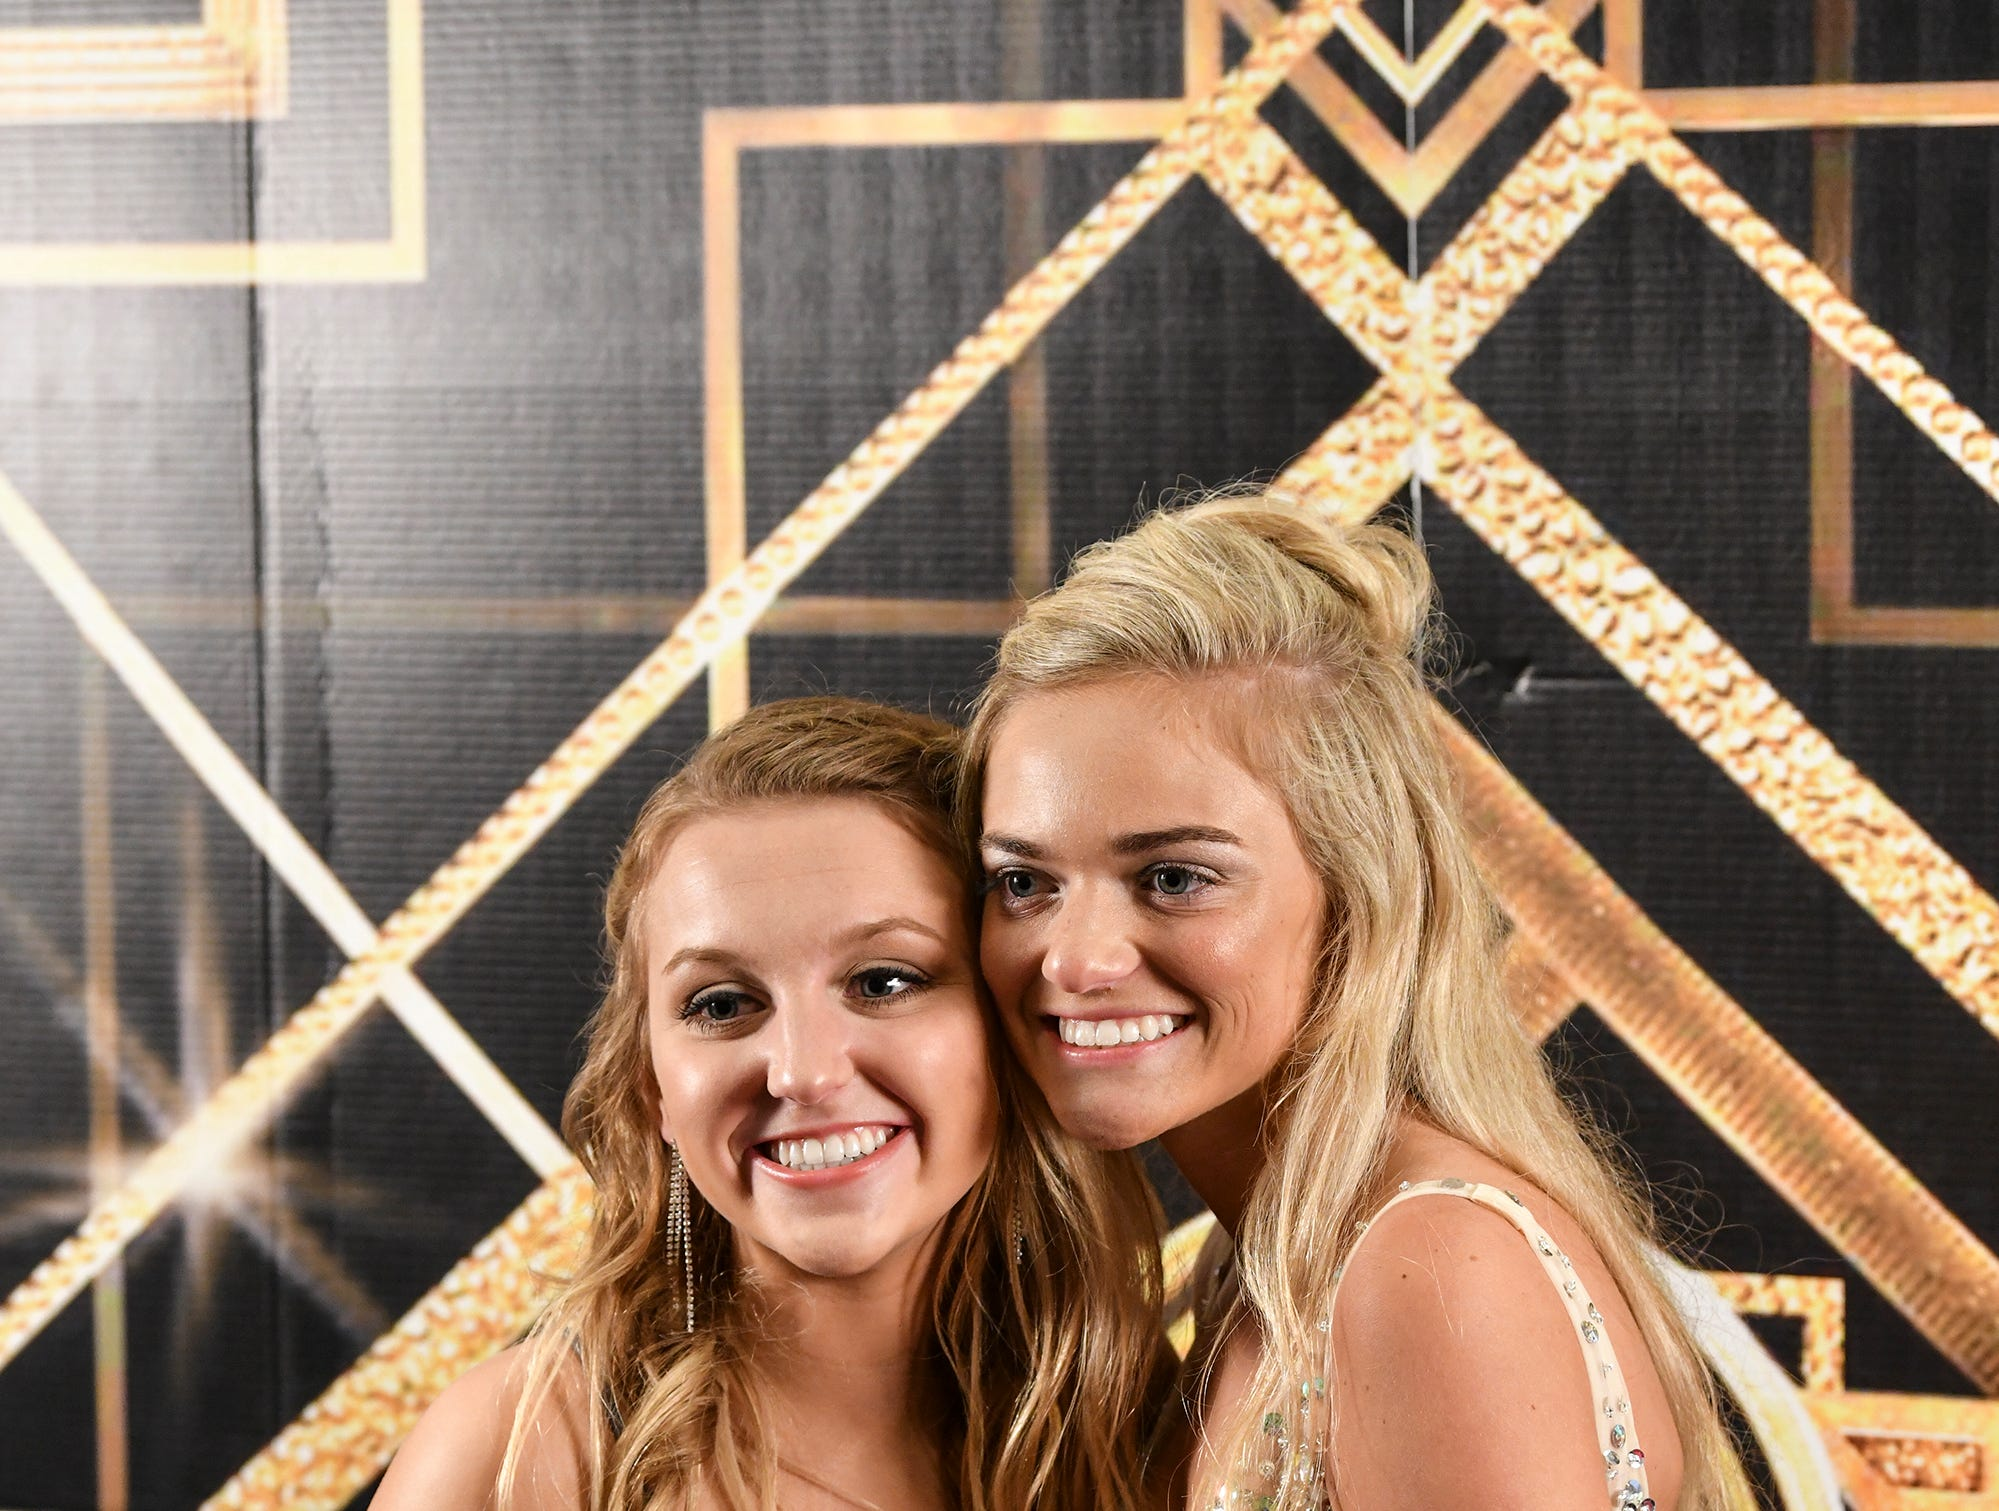 Kiley Kotzer and Brooke Schleicher pose for a photograph before the start of prom grand march Saturday, April 6, at Albany High School.